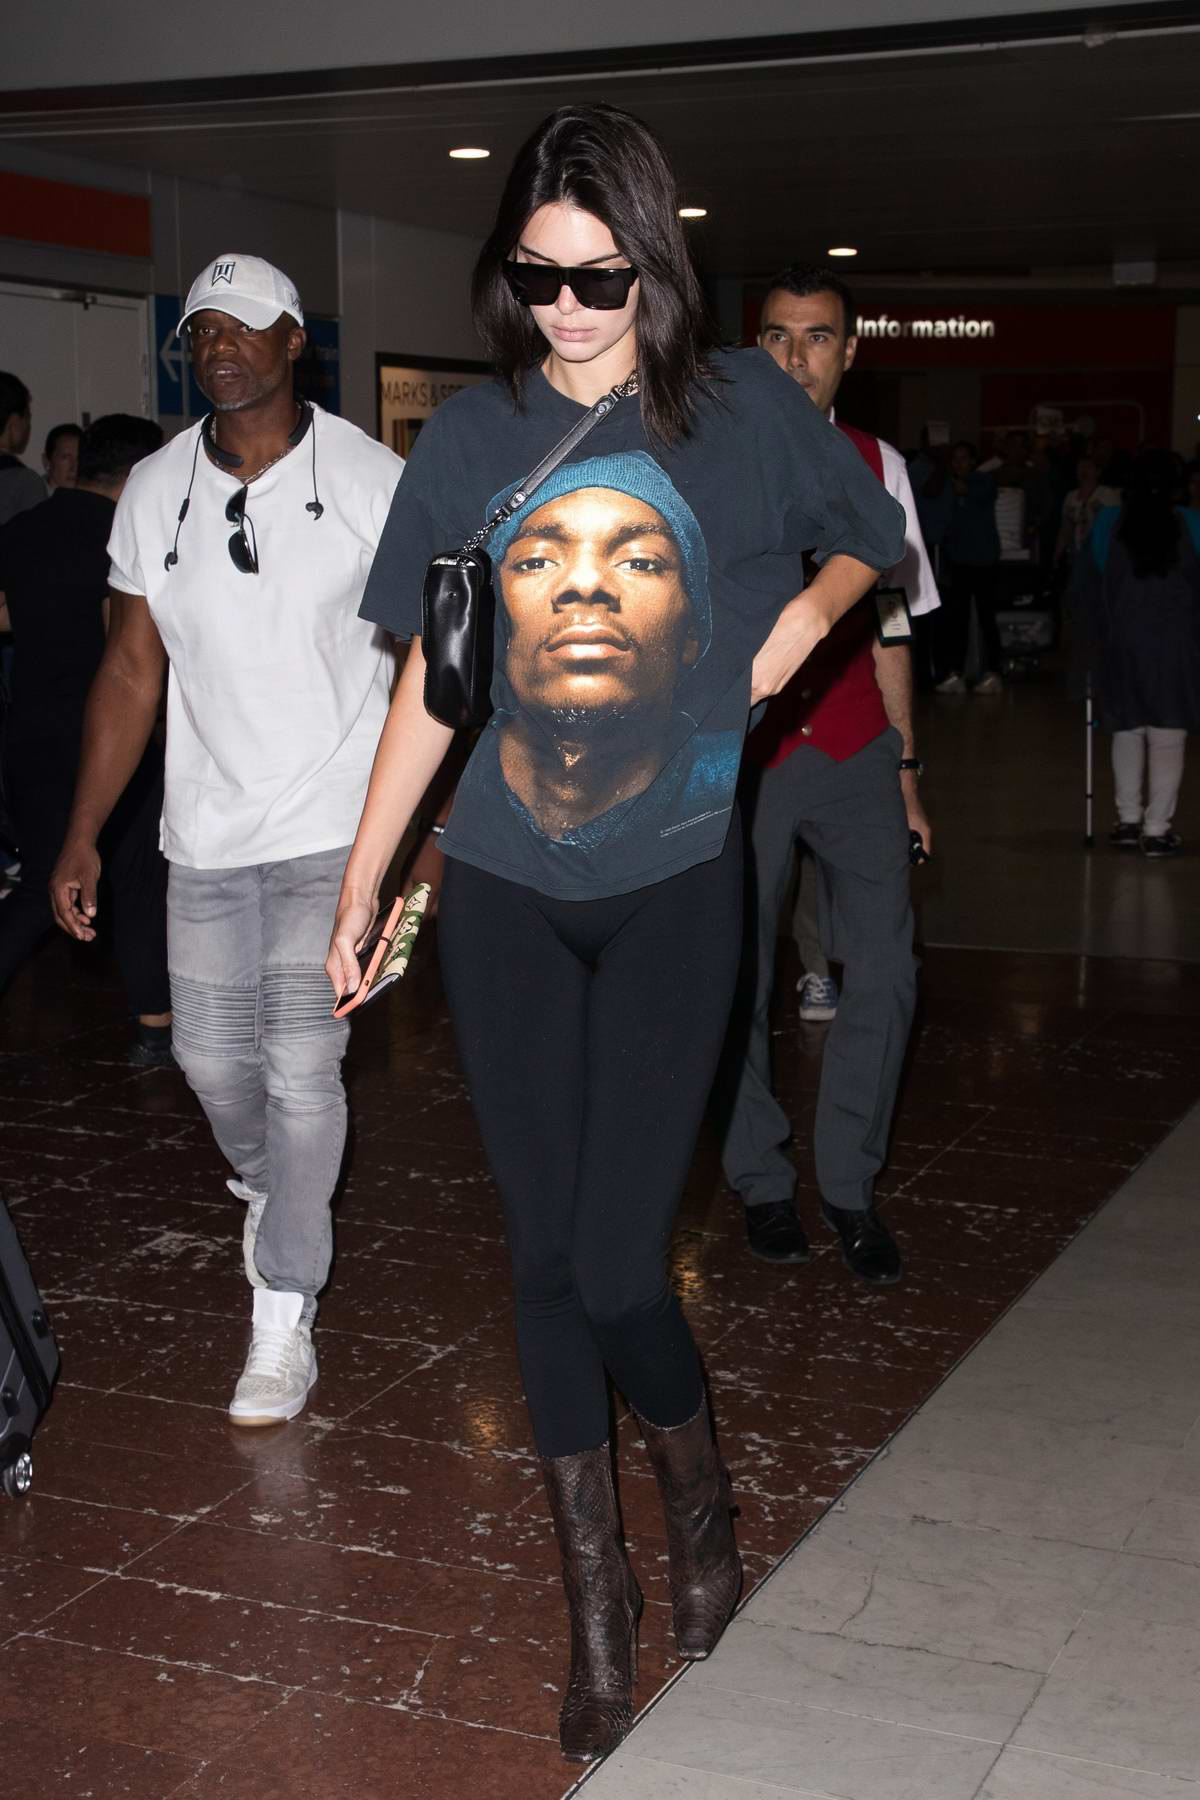 Kendall Jenner arrives at the Paris-Charles-de-Gaulle airport before heading off to her hotel in Paris, France